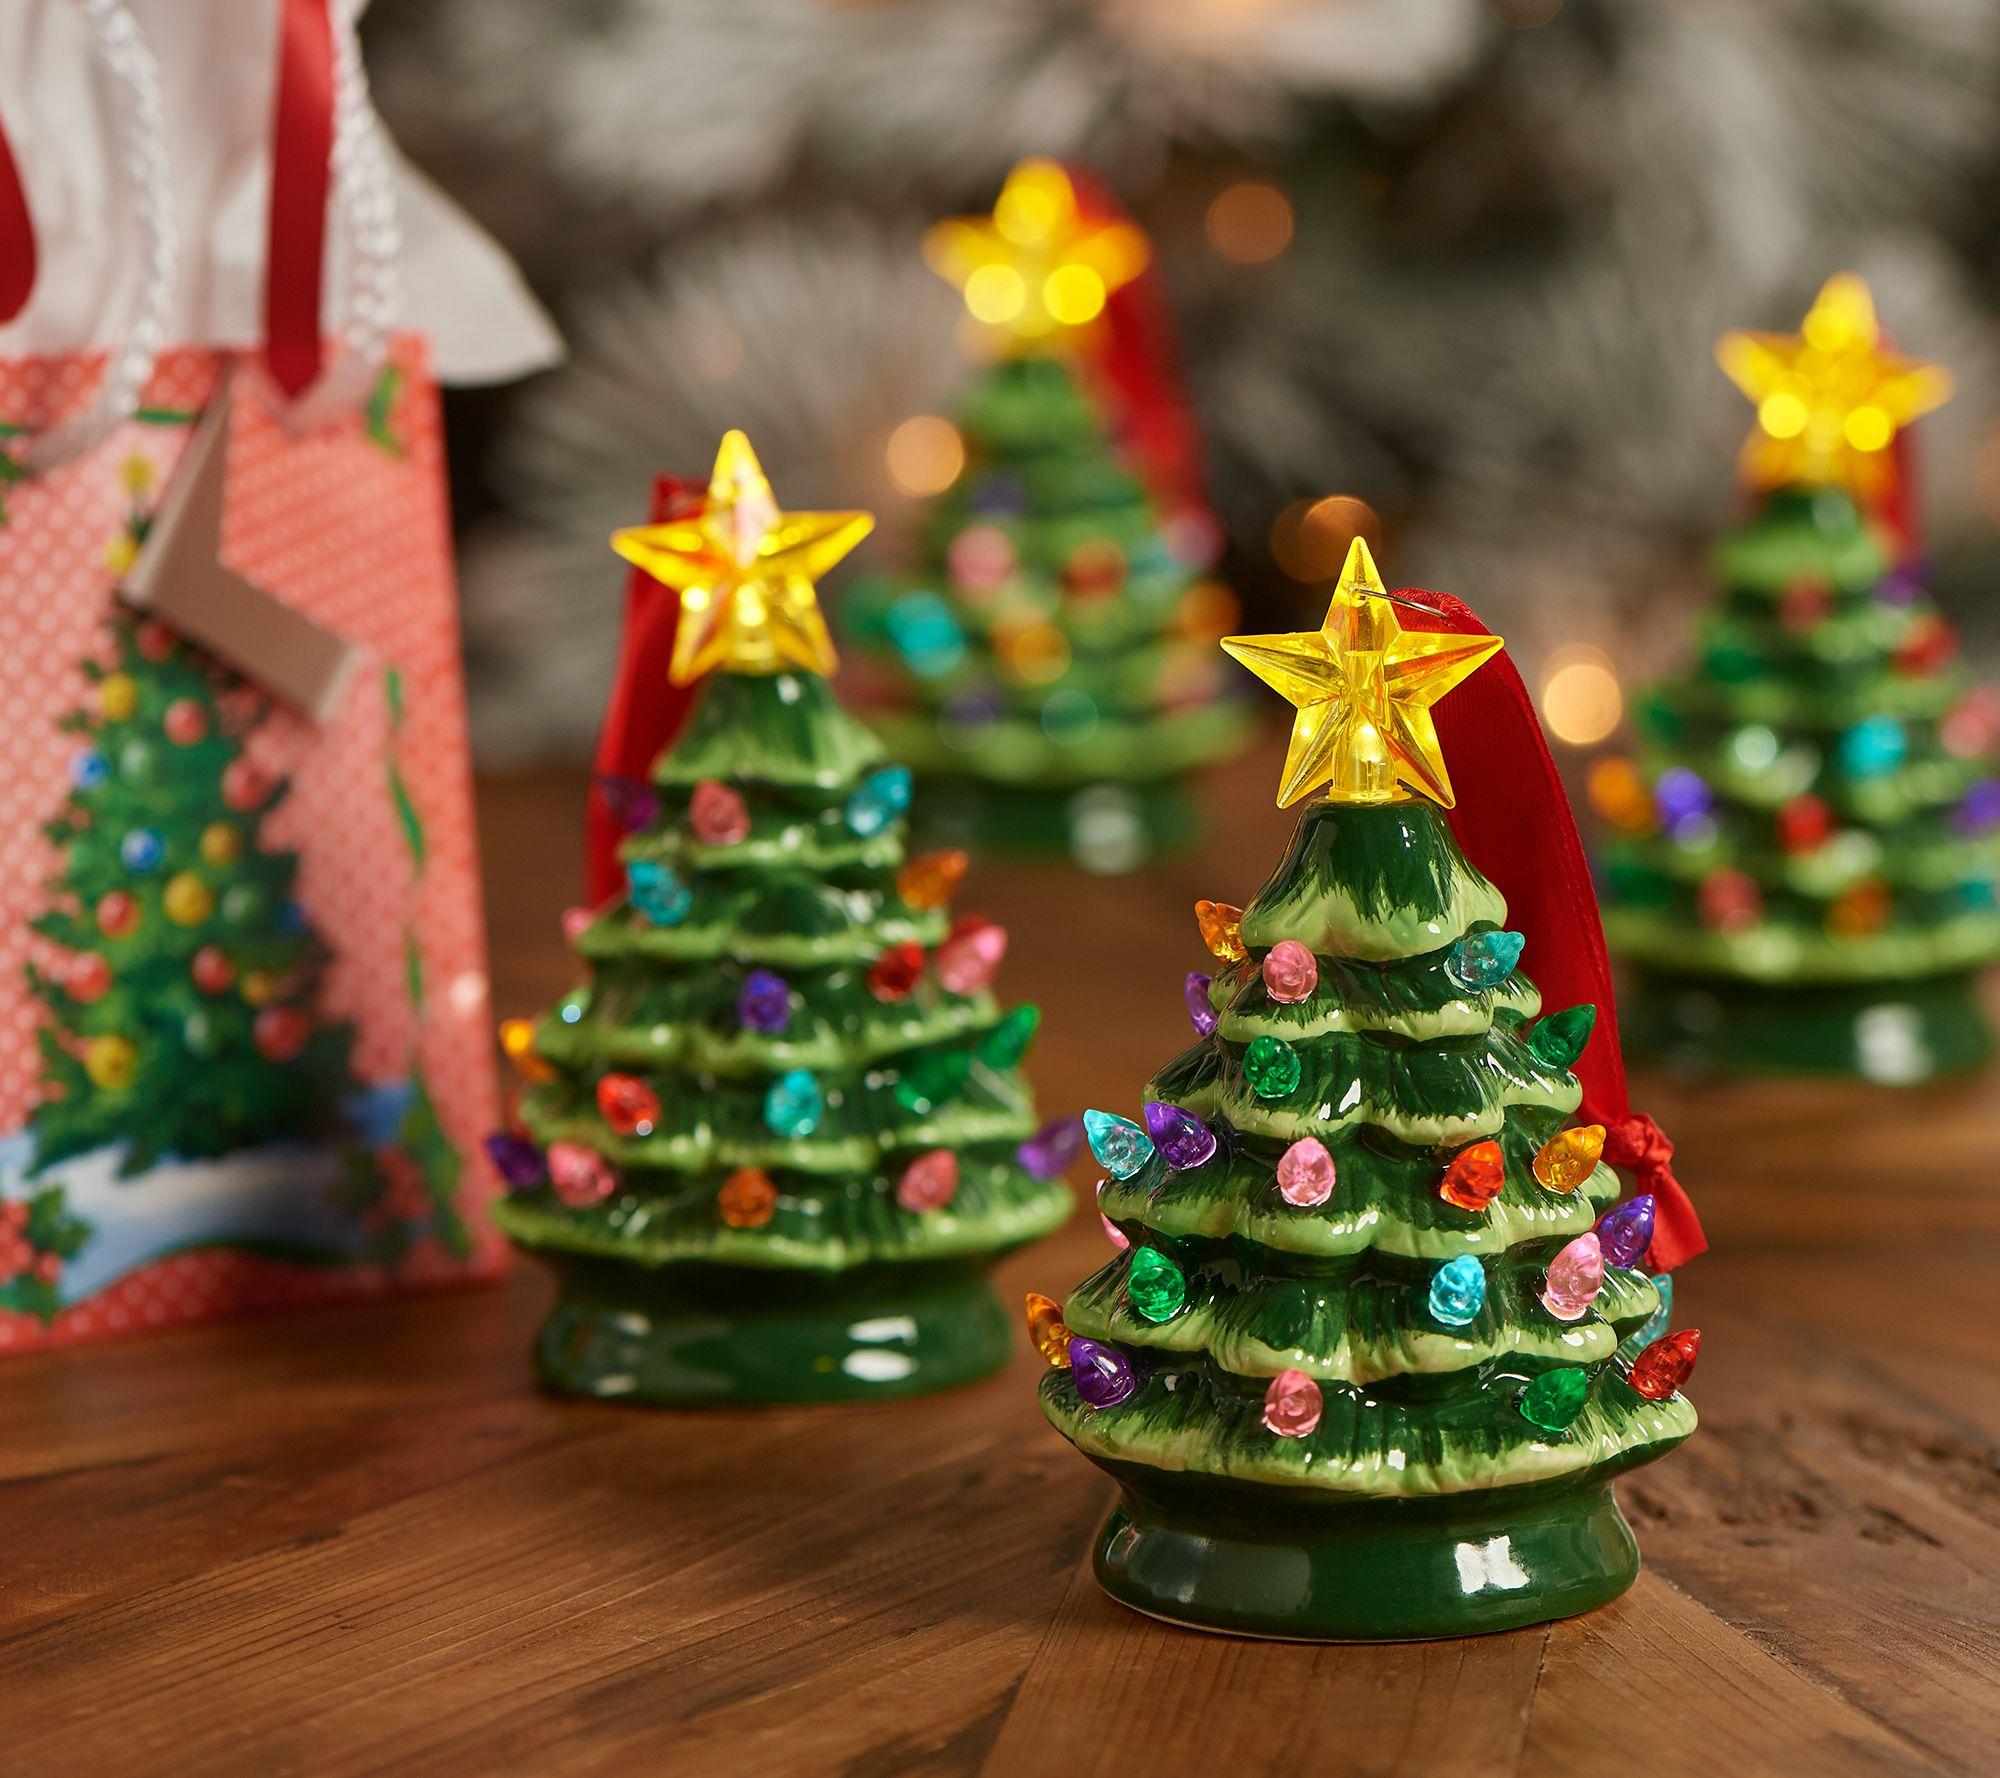 Mr. Christmas Set of 4 Mini Nostalgic Tree Ornaments with Gift Bags - Page 1 — QVC.com